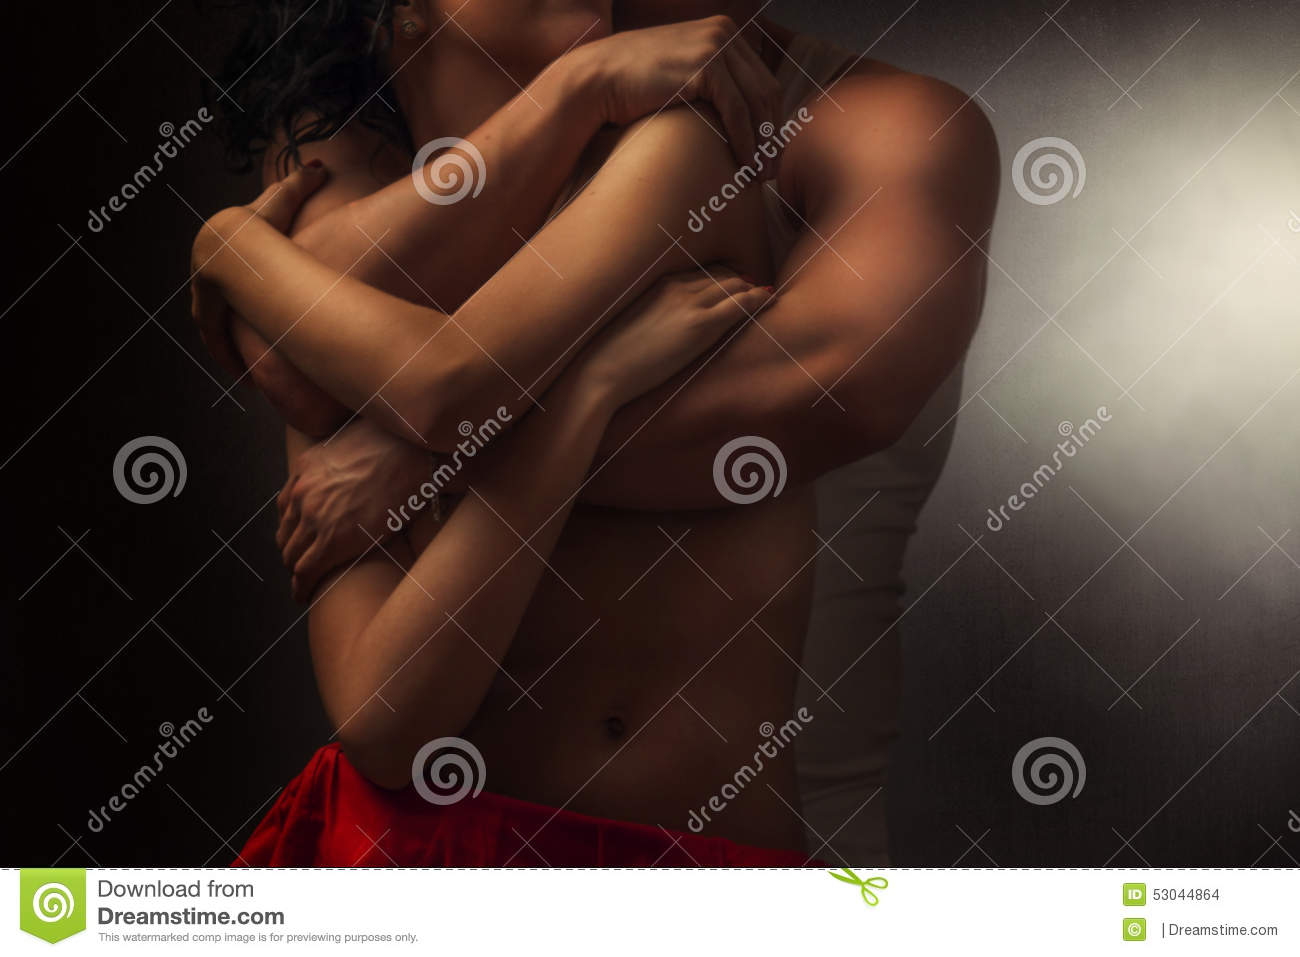 Pair of lovers in embrace